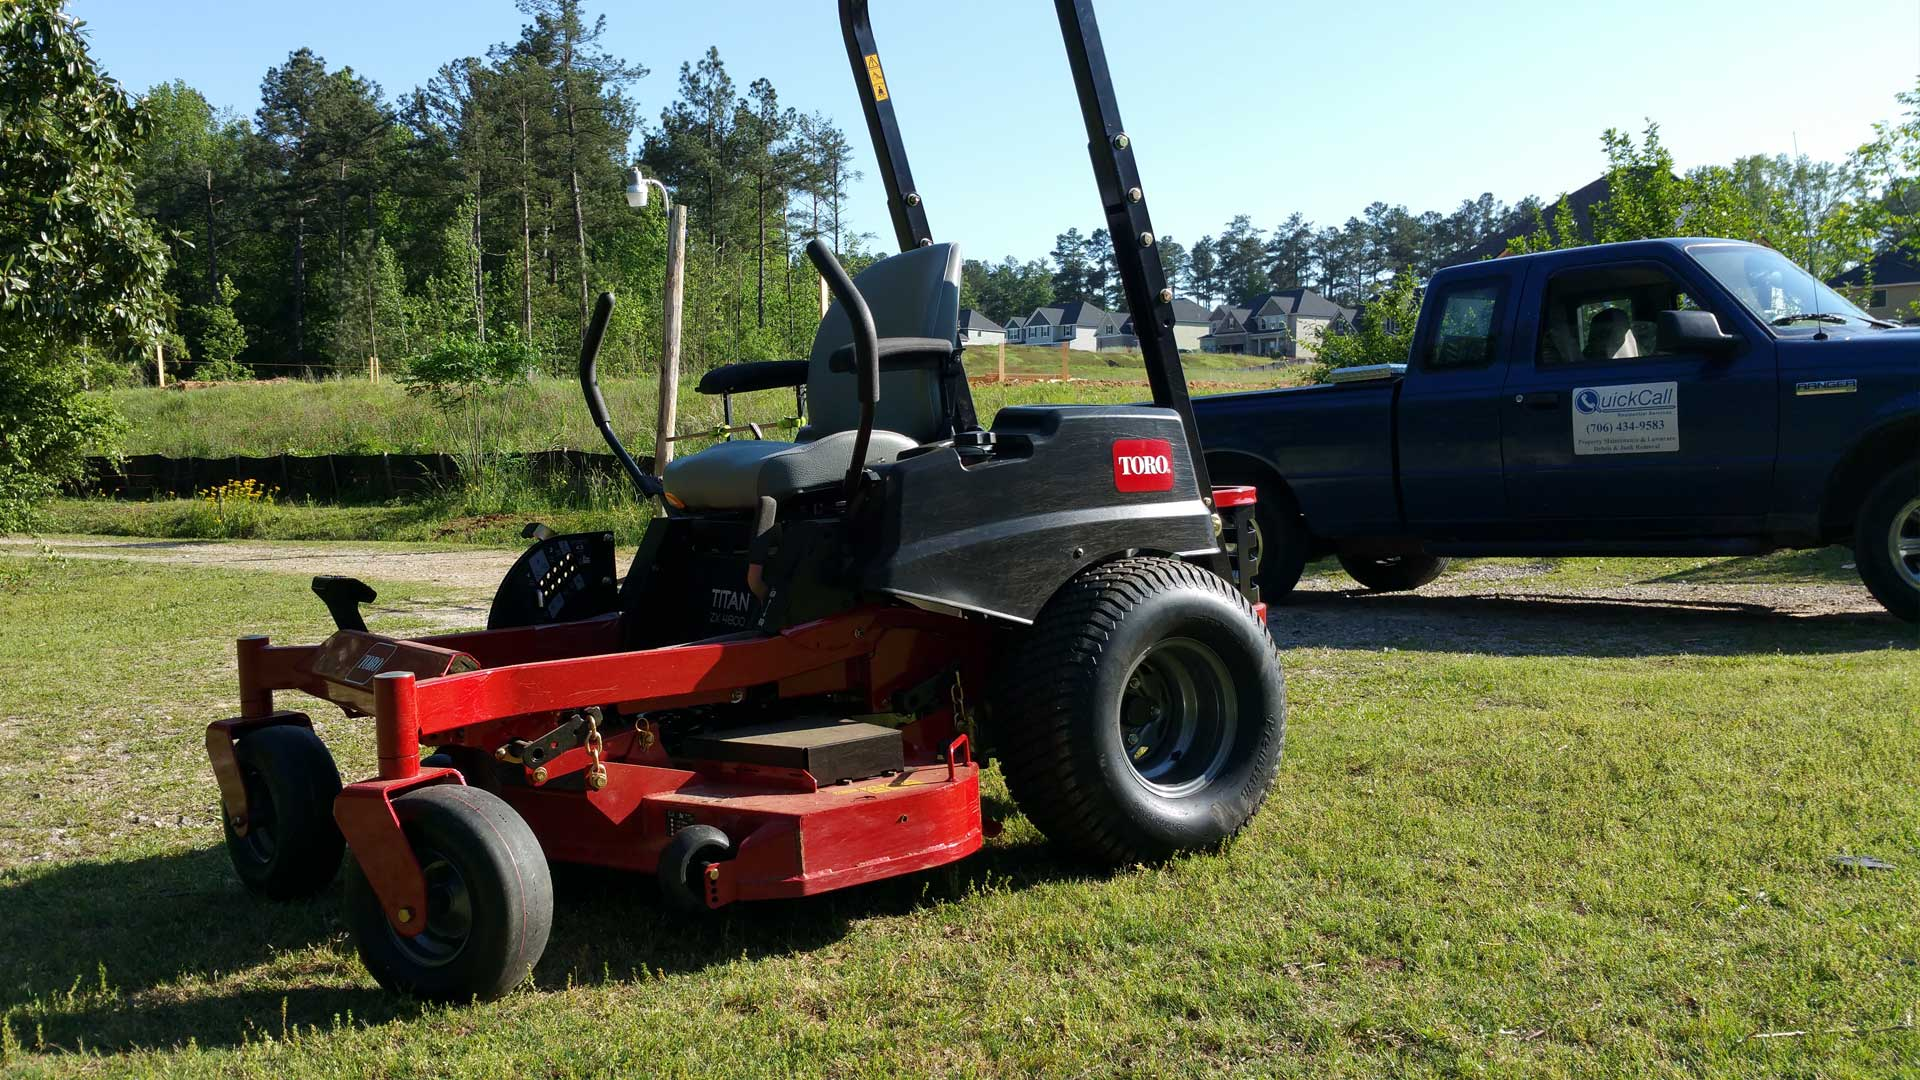 Quick Call lawn mower and truck, contact us today for lawn and landscape maintenance in Martinez.